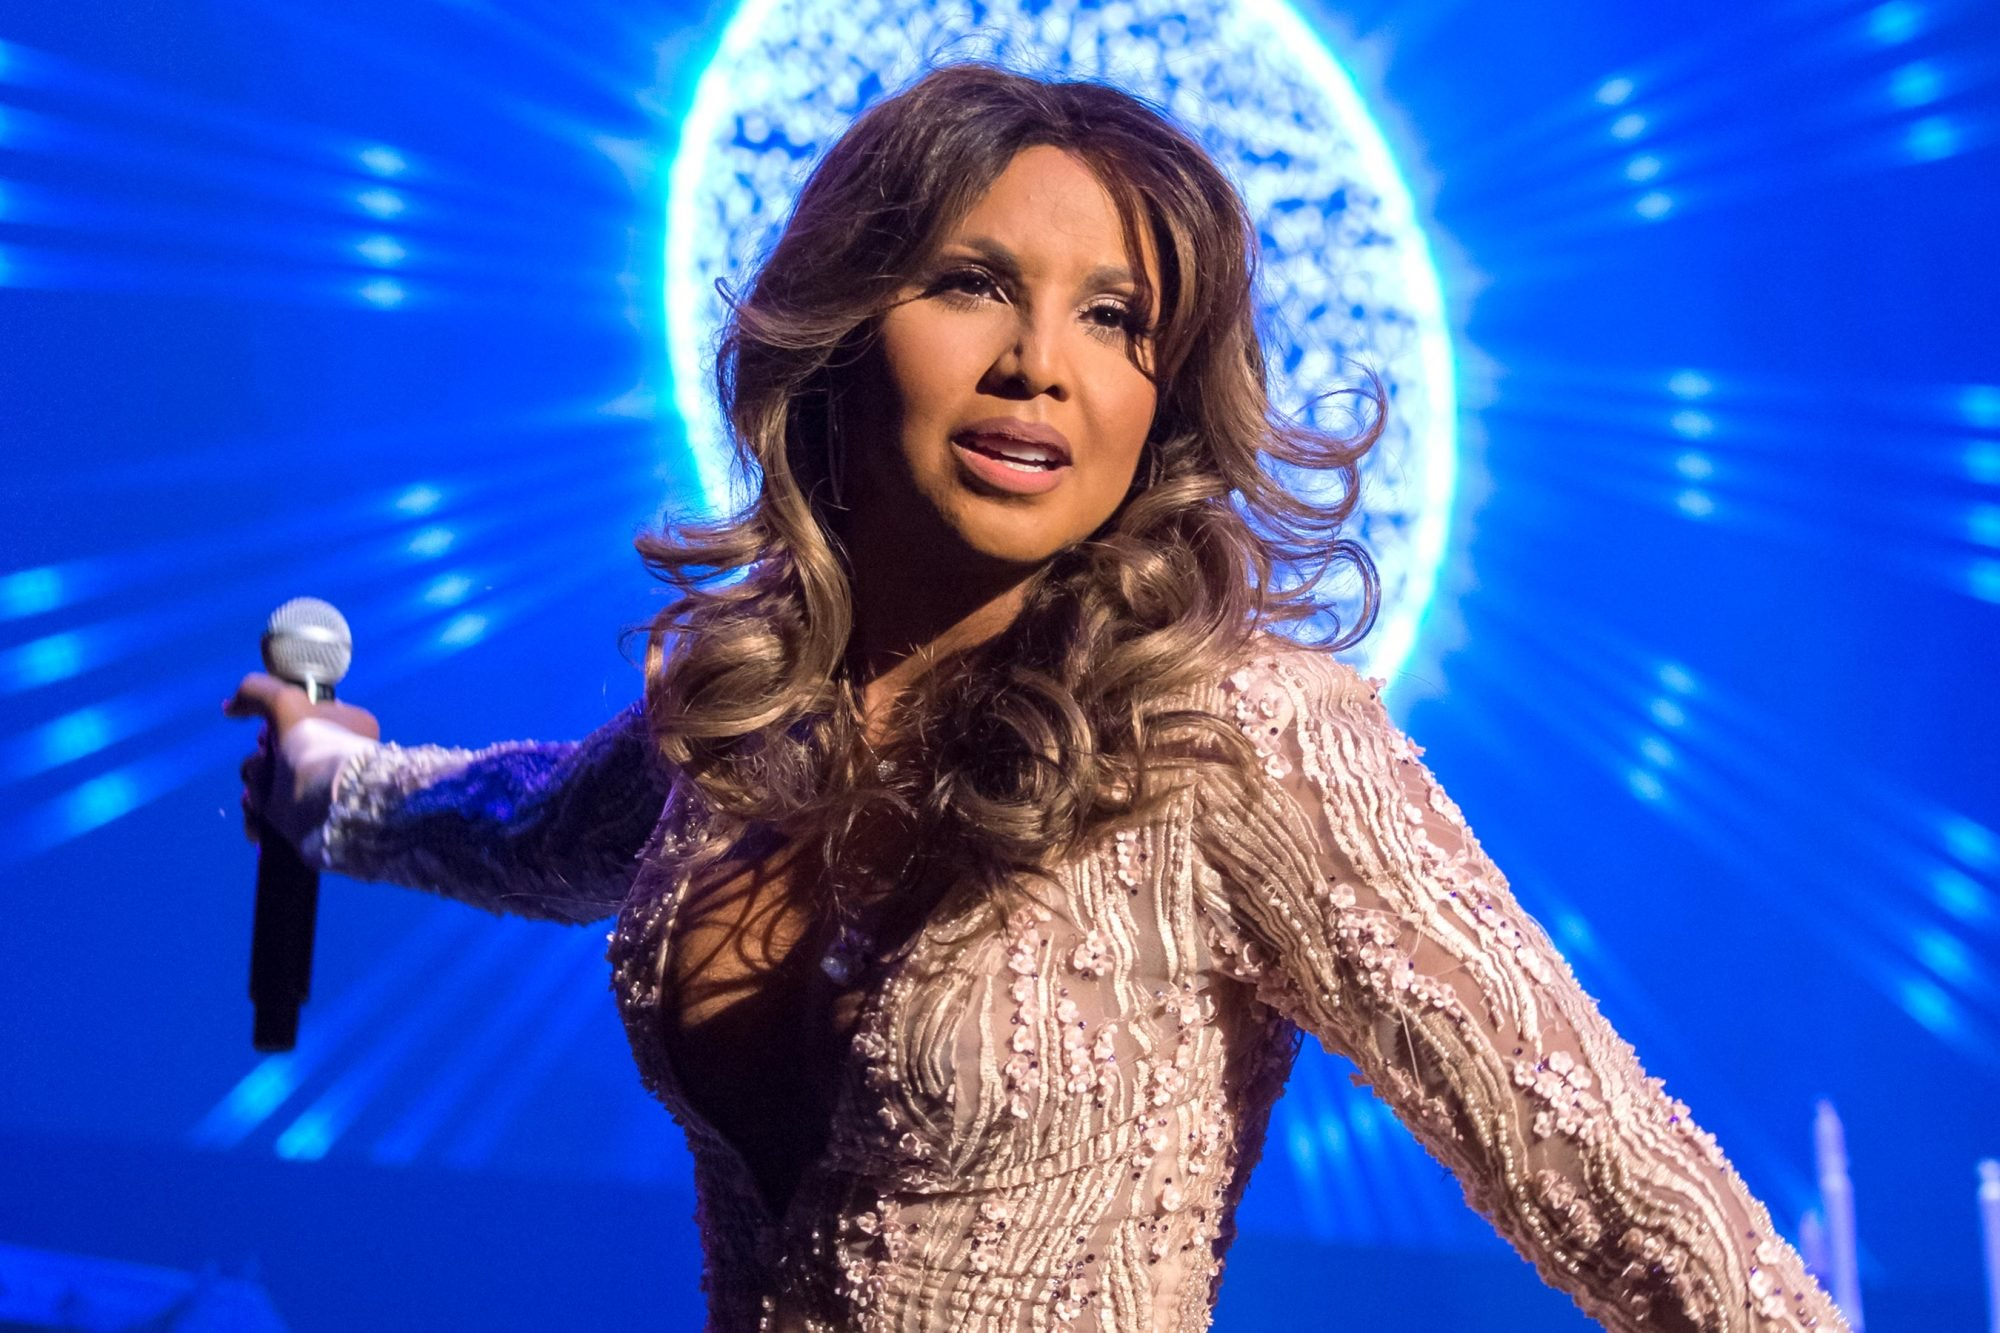 Toni Braxton's Fans Praise Her New Music – People Say The Album Is Her Best